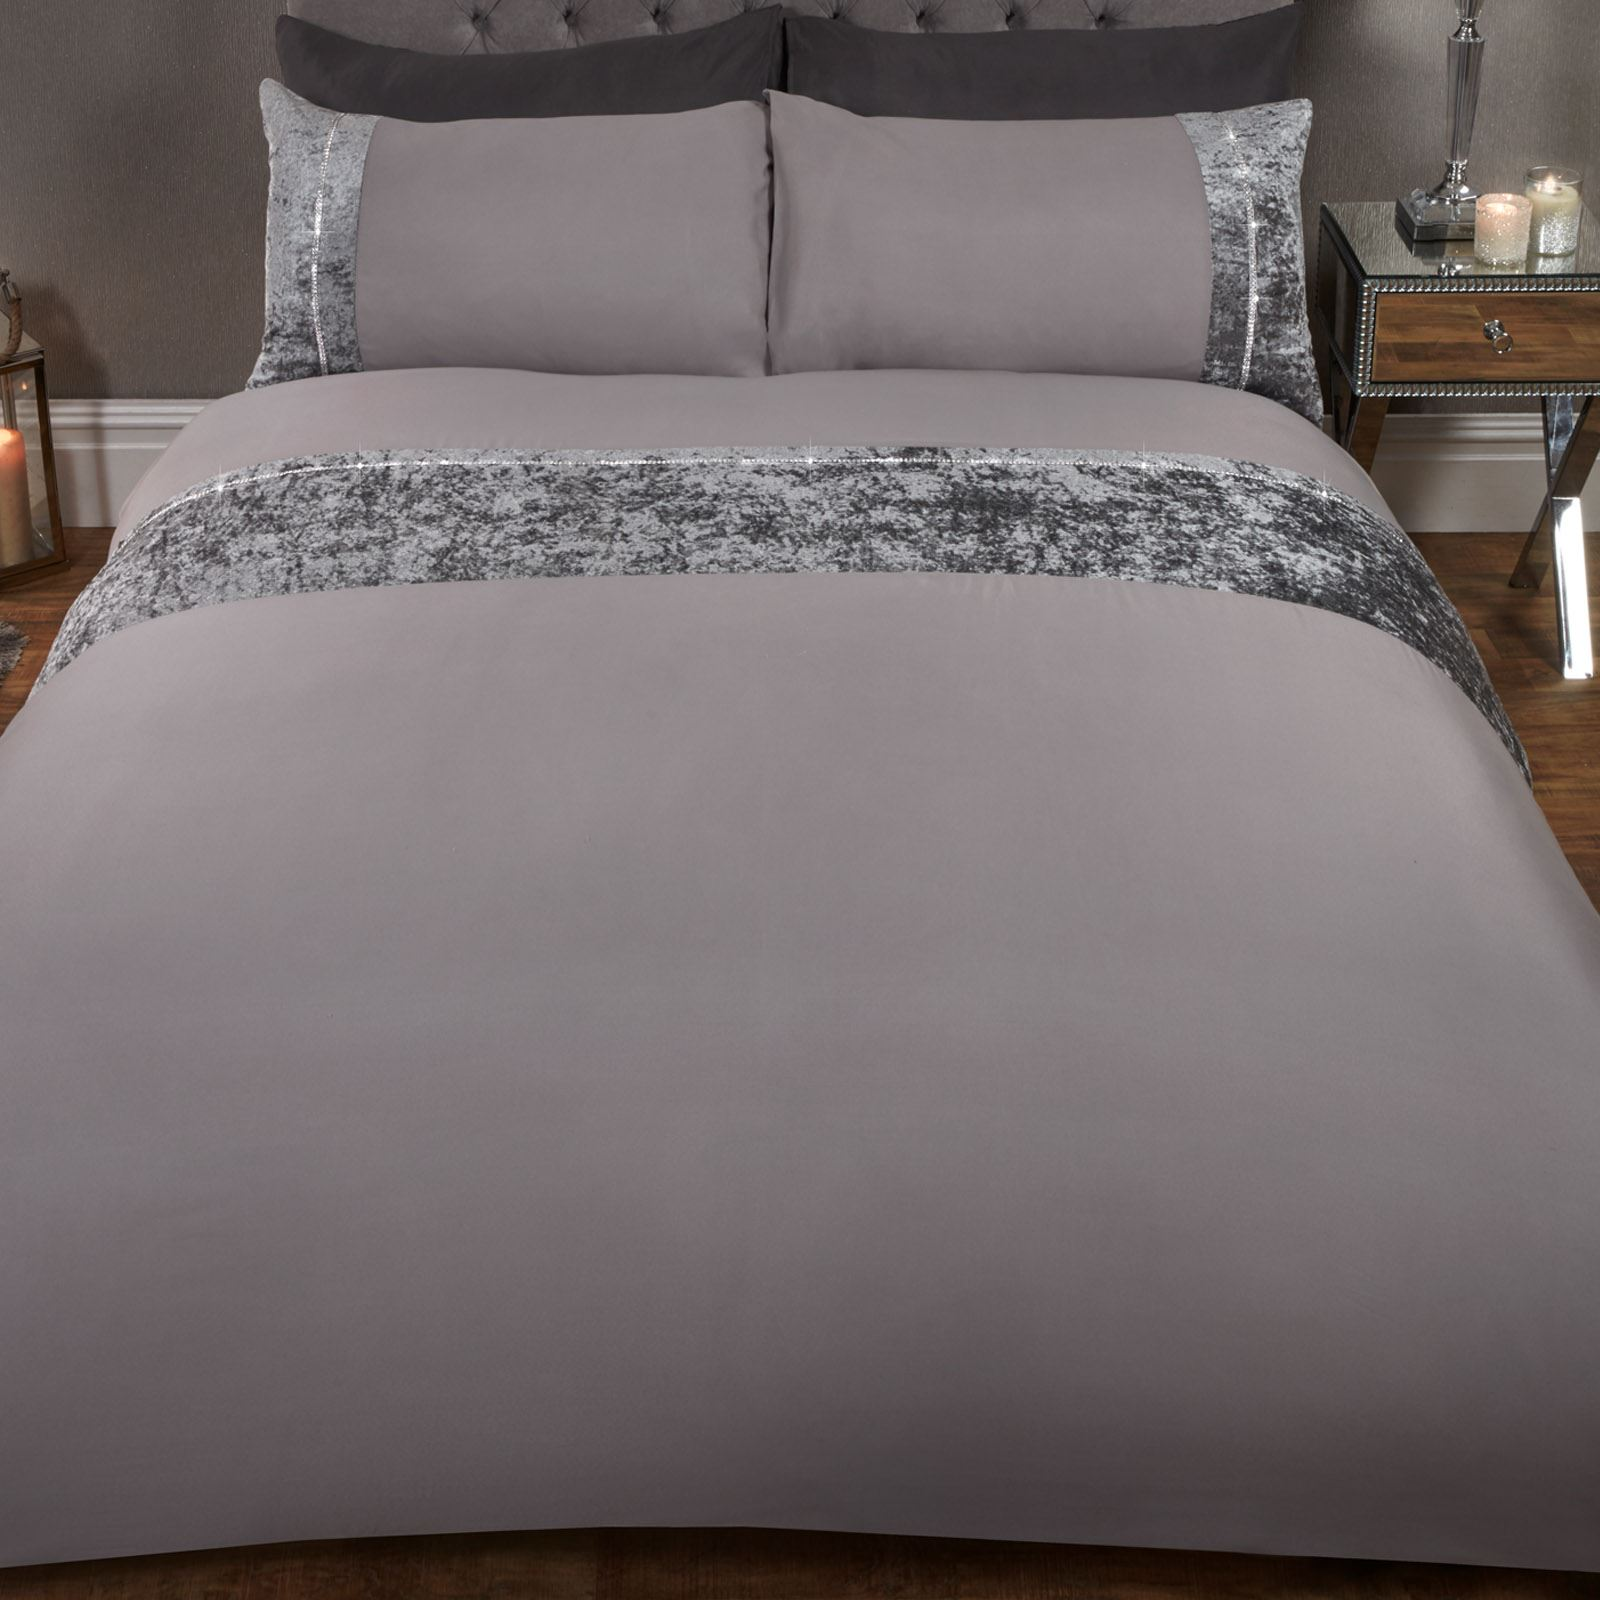 Sienna-Crushed-Velvet-Diamante-Band-Duvet-Cover-with-Pillowcase-Grey-Bedding-Set thumbnail 10